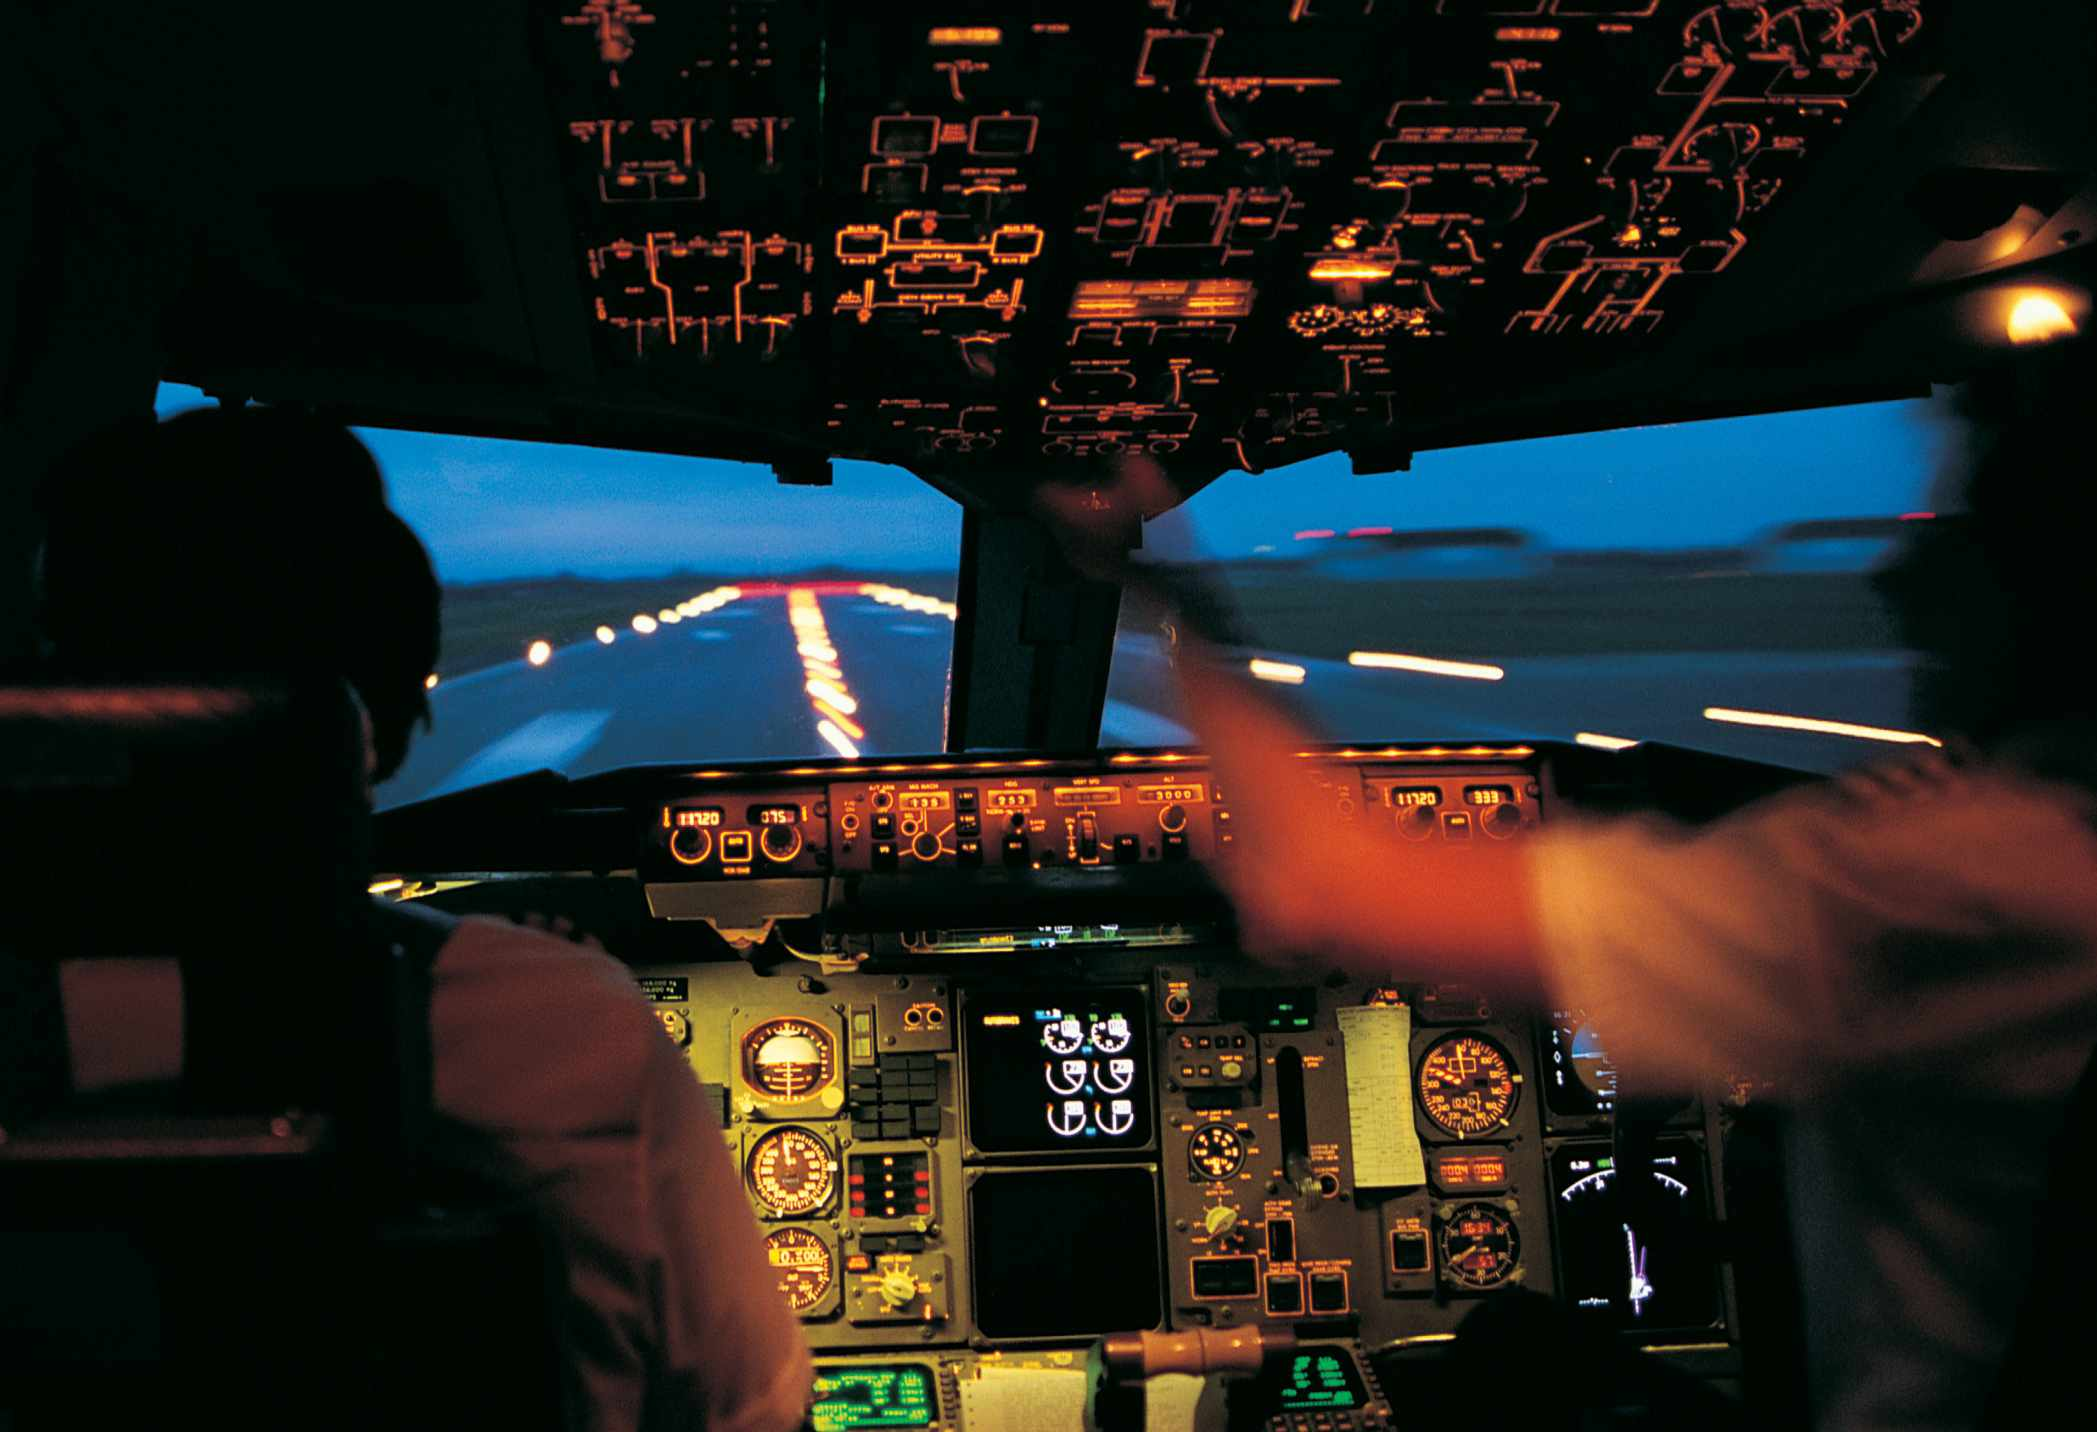 Pilot and copilot in the cockpit during a night flight.